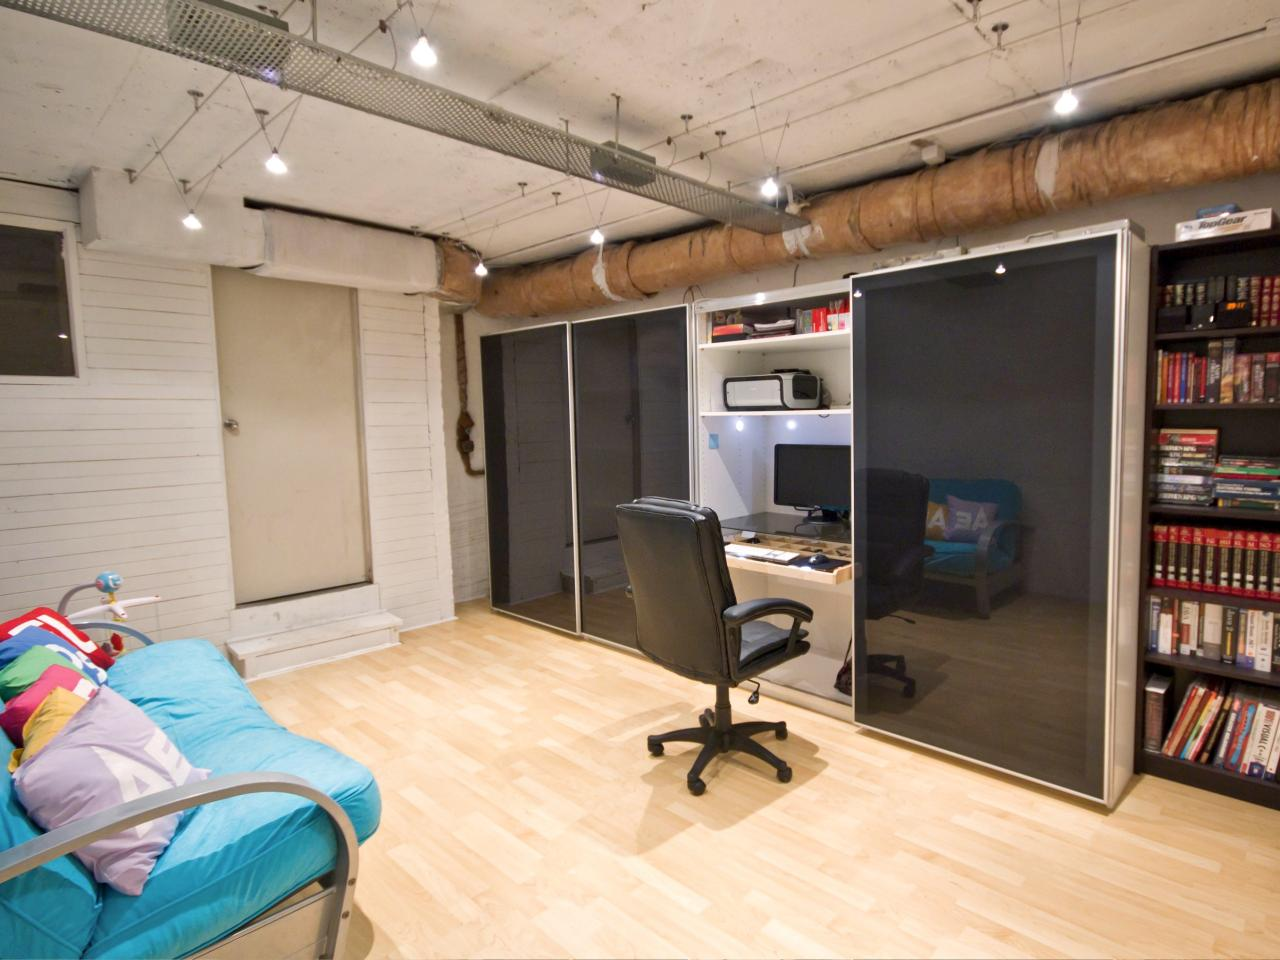 15 closets turned into space saving office nooks - Closet for small room ...